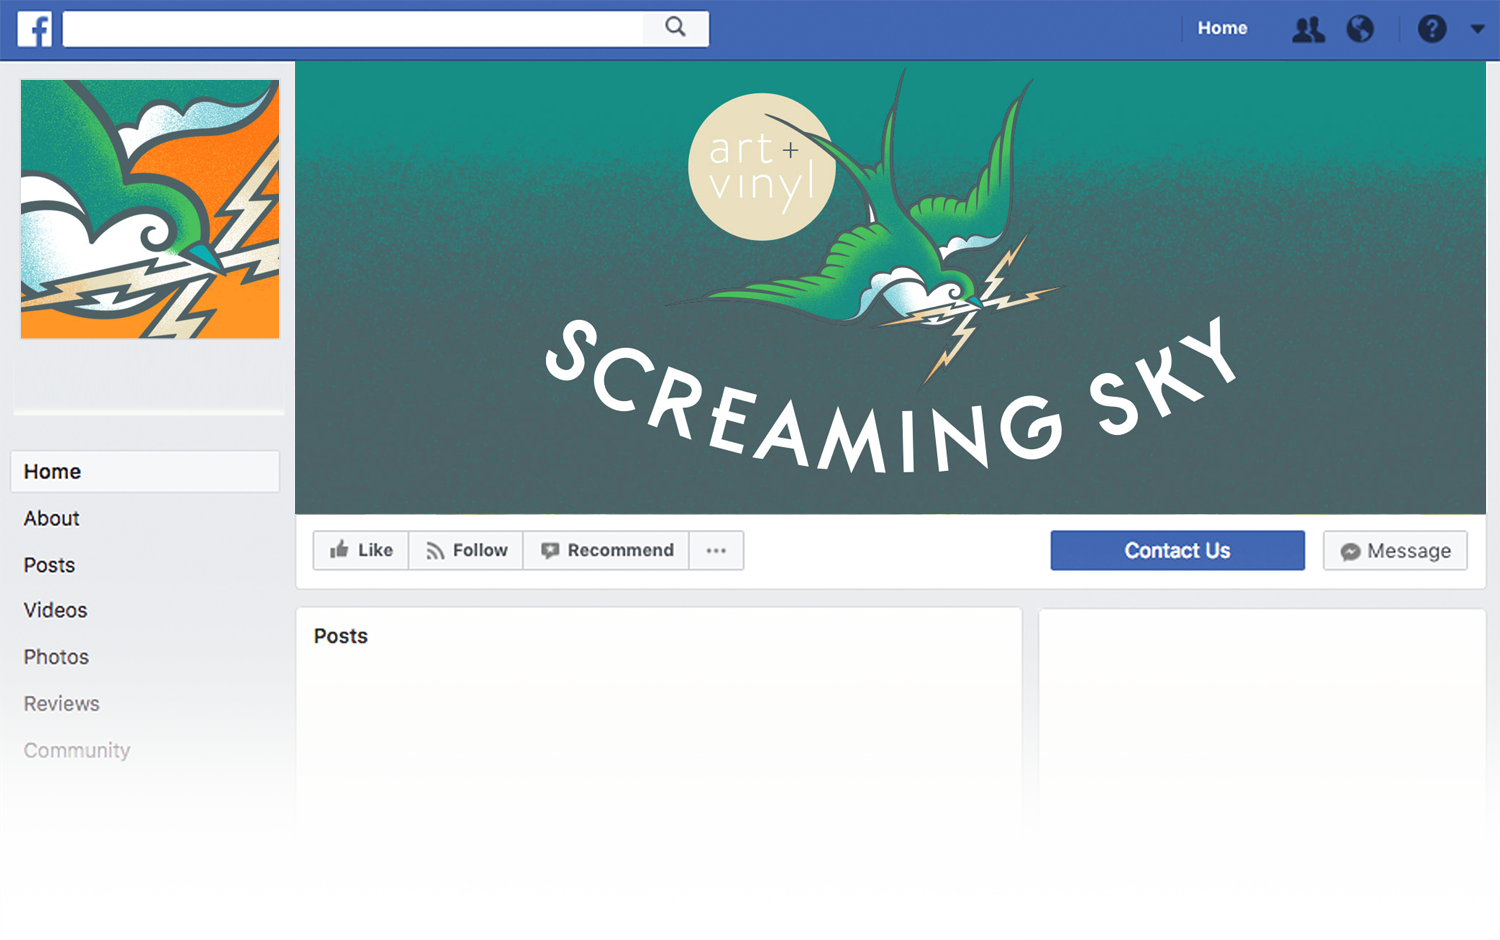 Screaming Sky facebook cover design